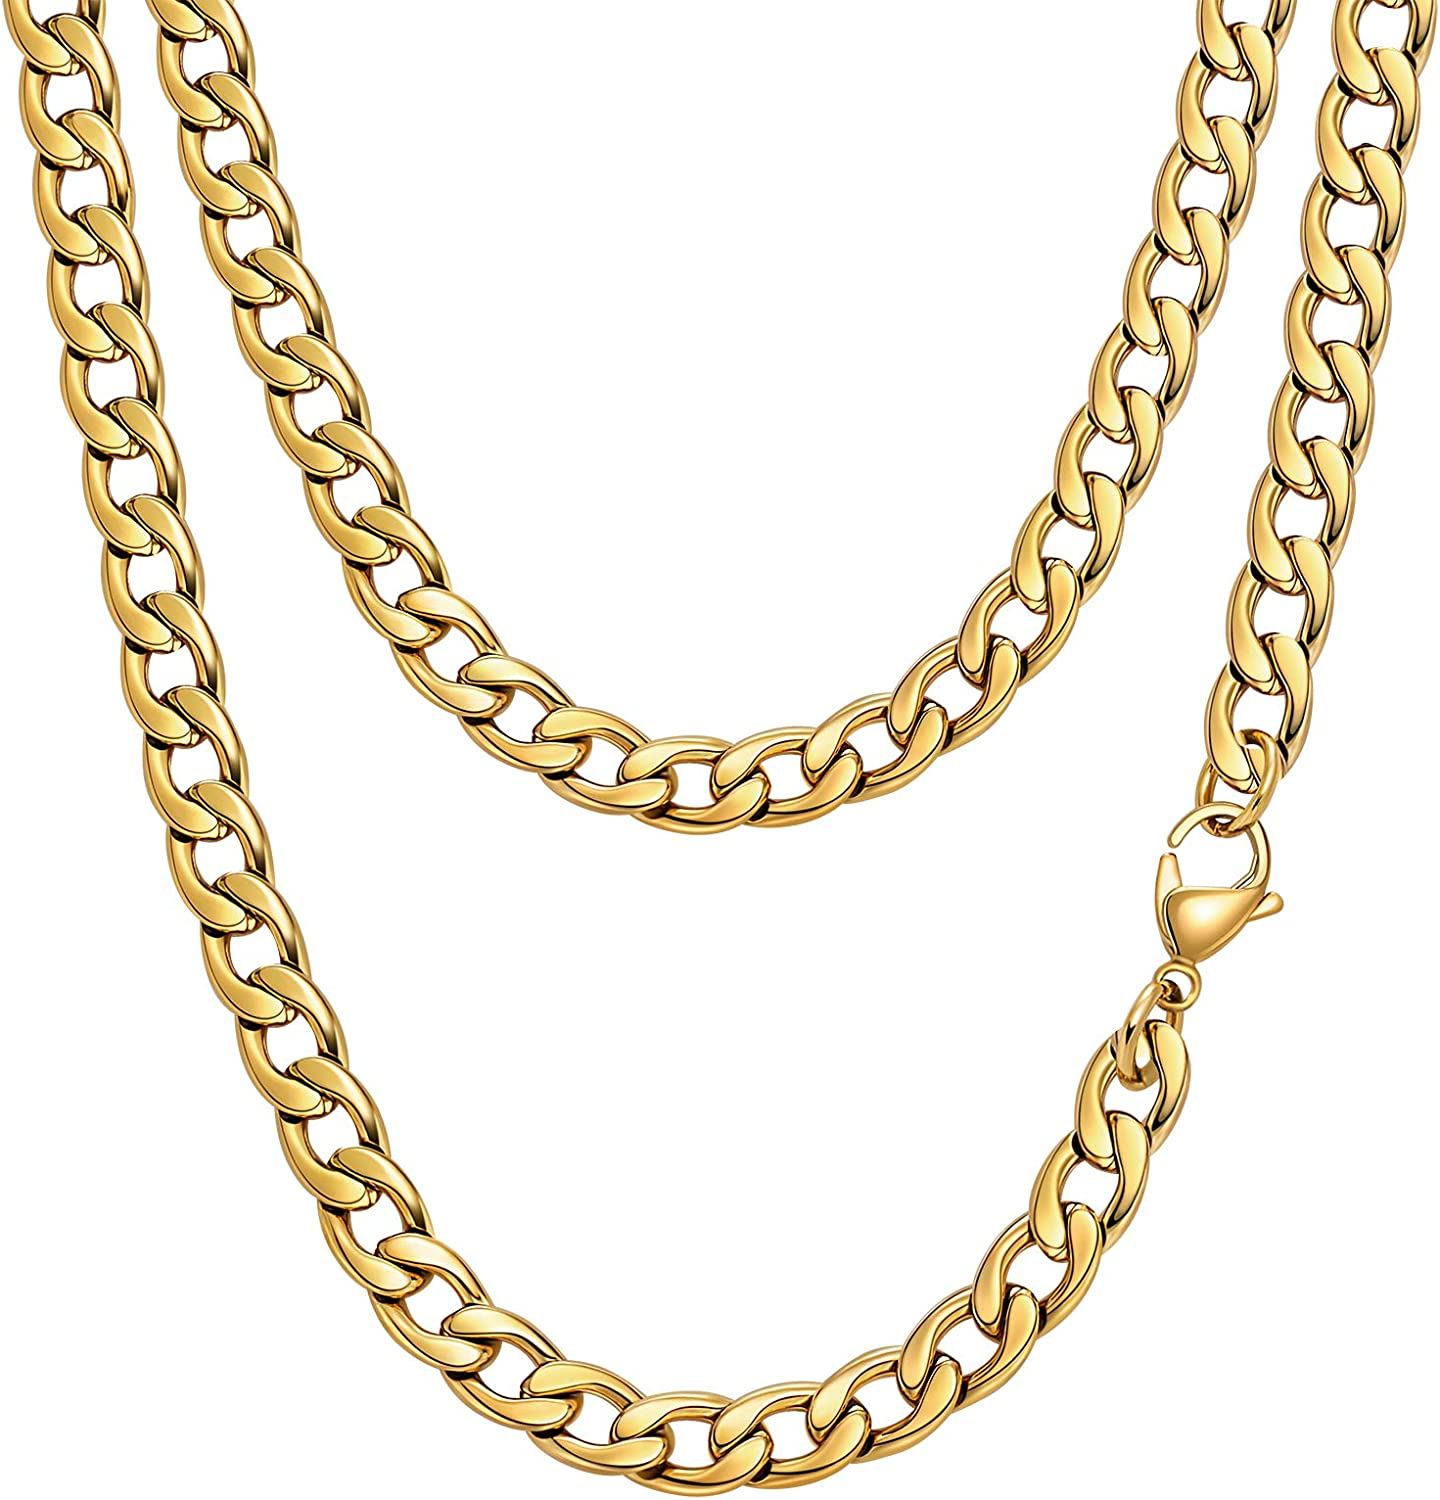 Jugalstar Fake Gold Chain Stainless Steel Necklace for Men Women, 22 Inch Golden Ultra Luxury Looking Feeling Real Solid 14K Gold Plated Curb Fake Neck Chain for Graduation Gathering Party Dancing